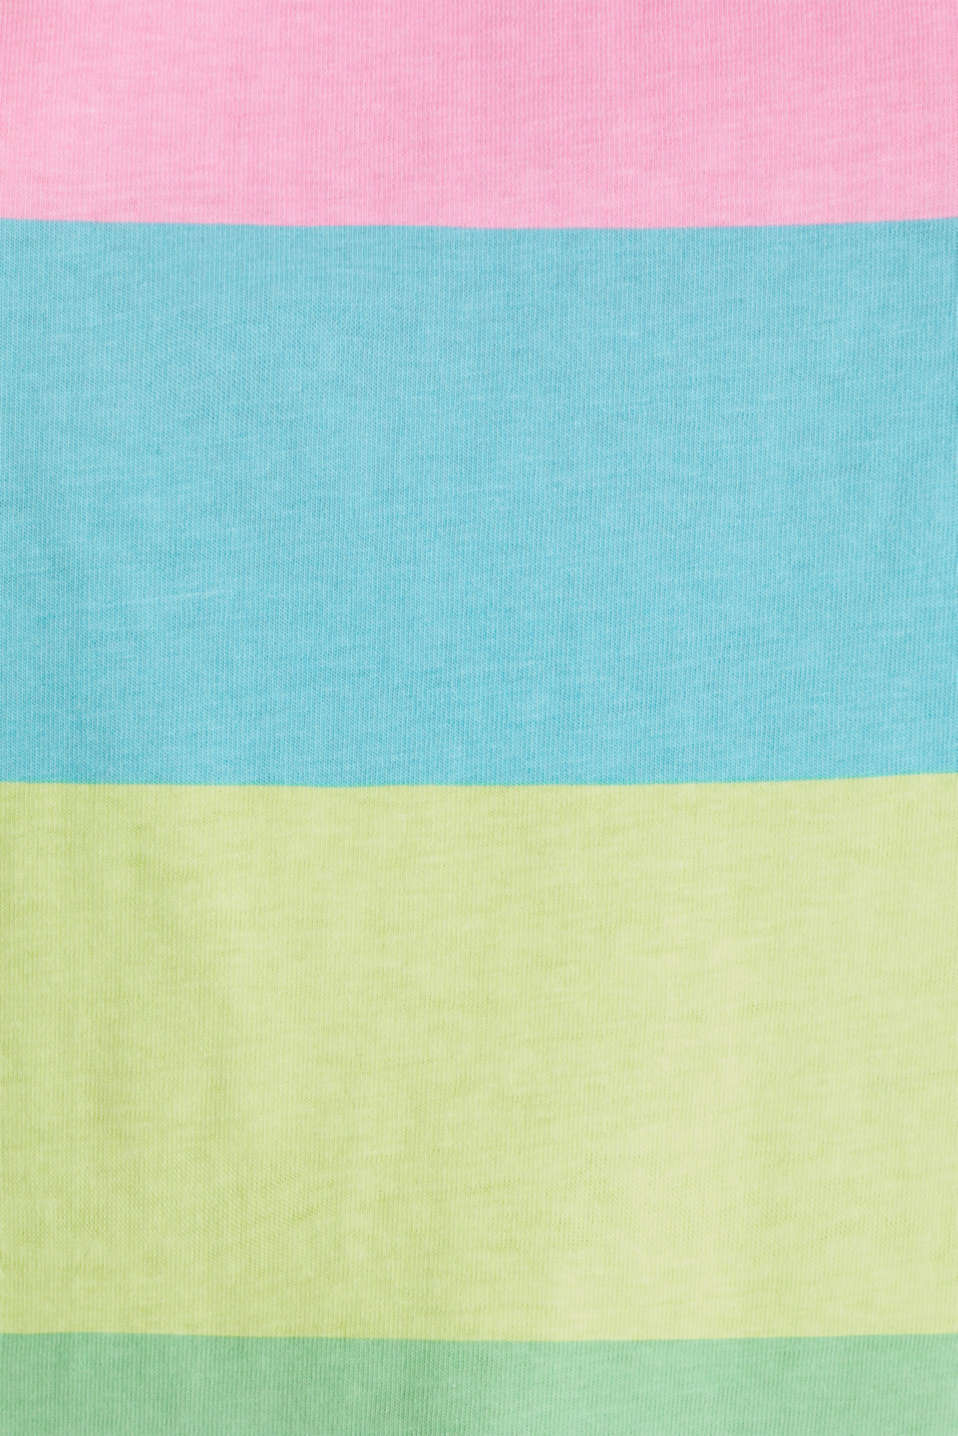 T-shirt with block stripes, 100% cotton, LIME YELLOW, detail image number 3